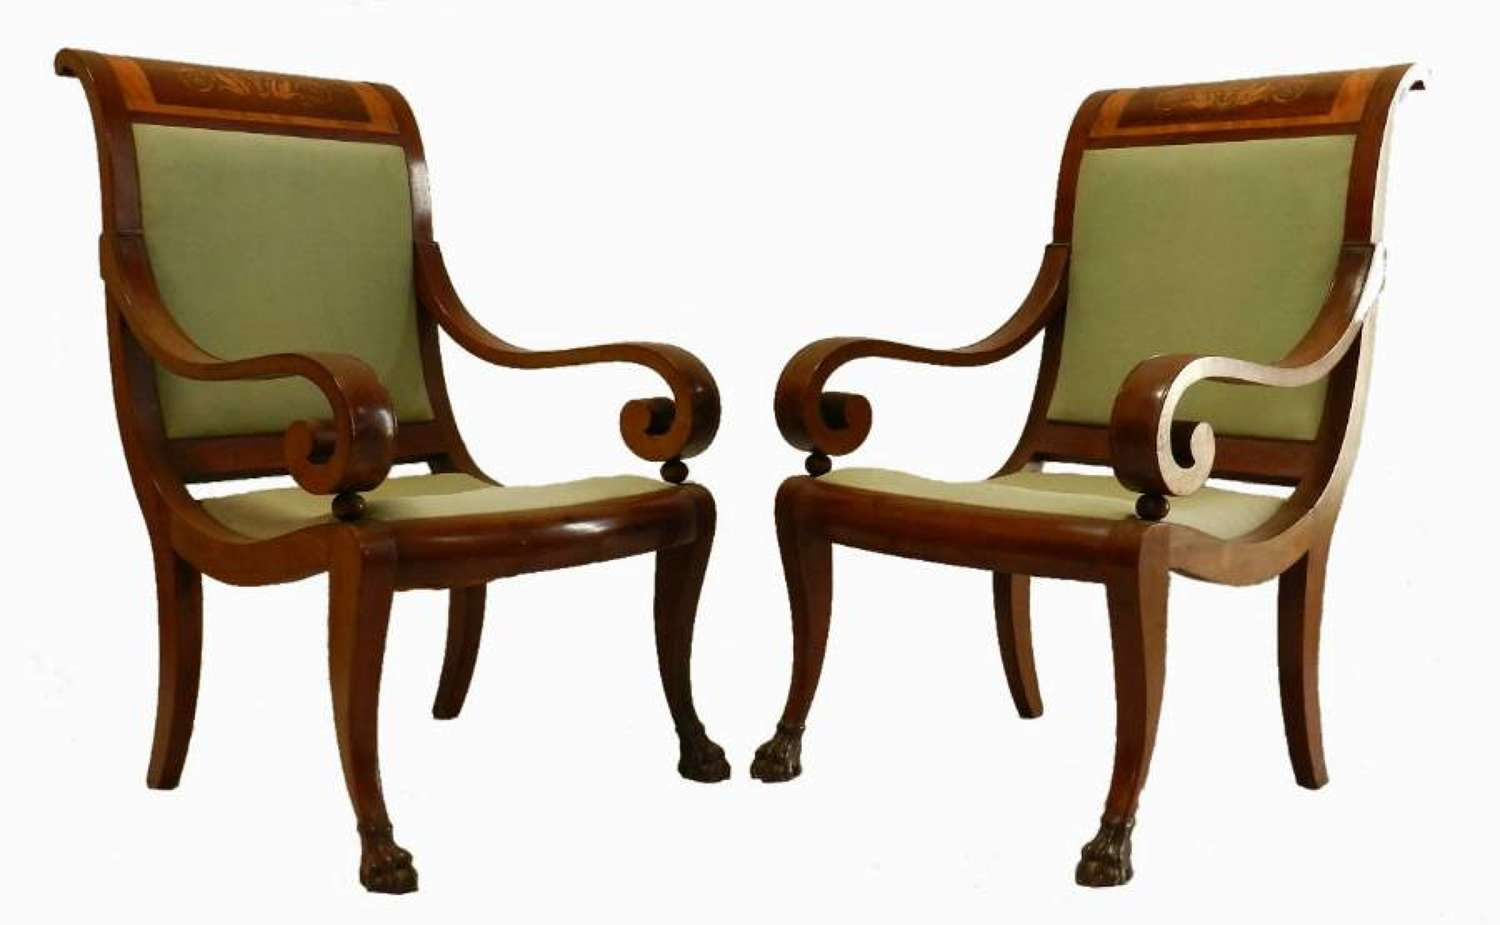 Early C19 French Directoire Transitional Empire Chairs Fauteuil open Armchairs